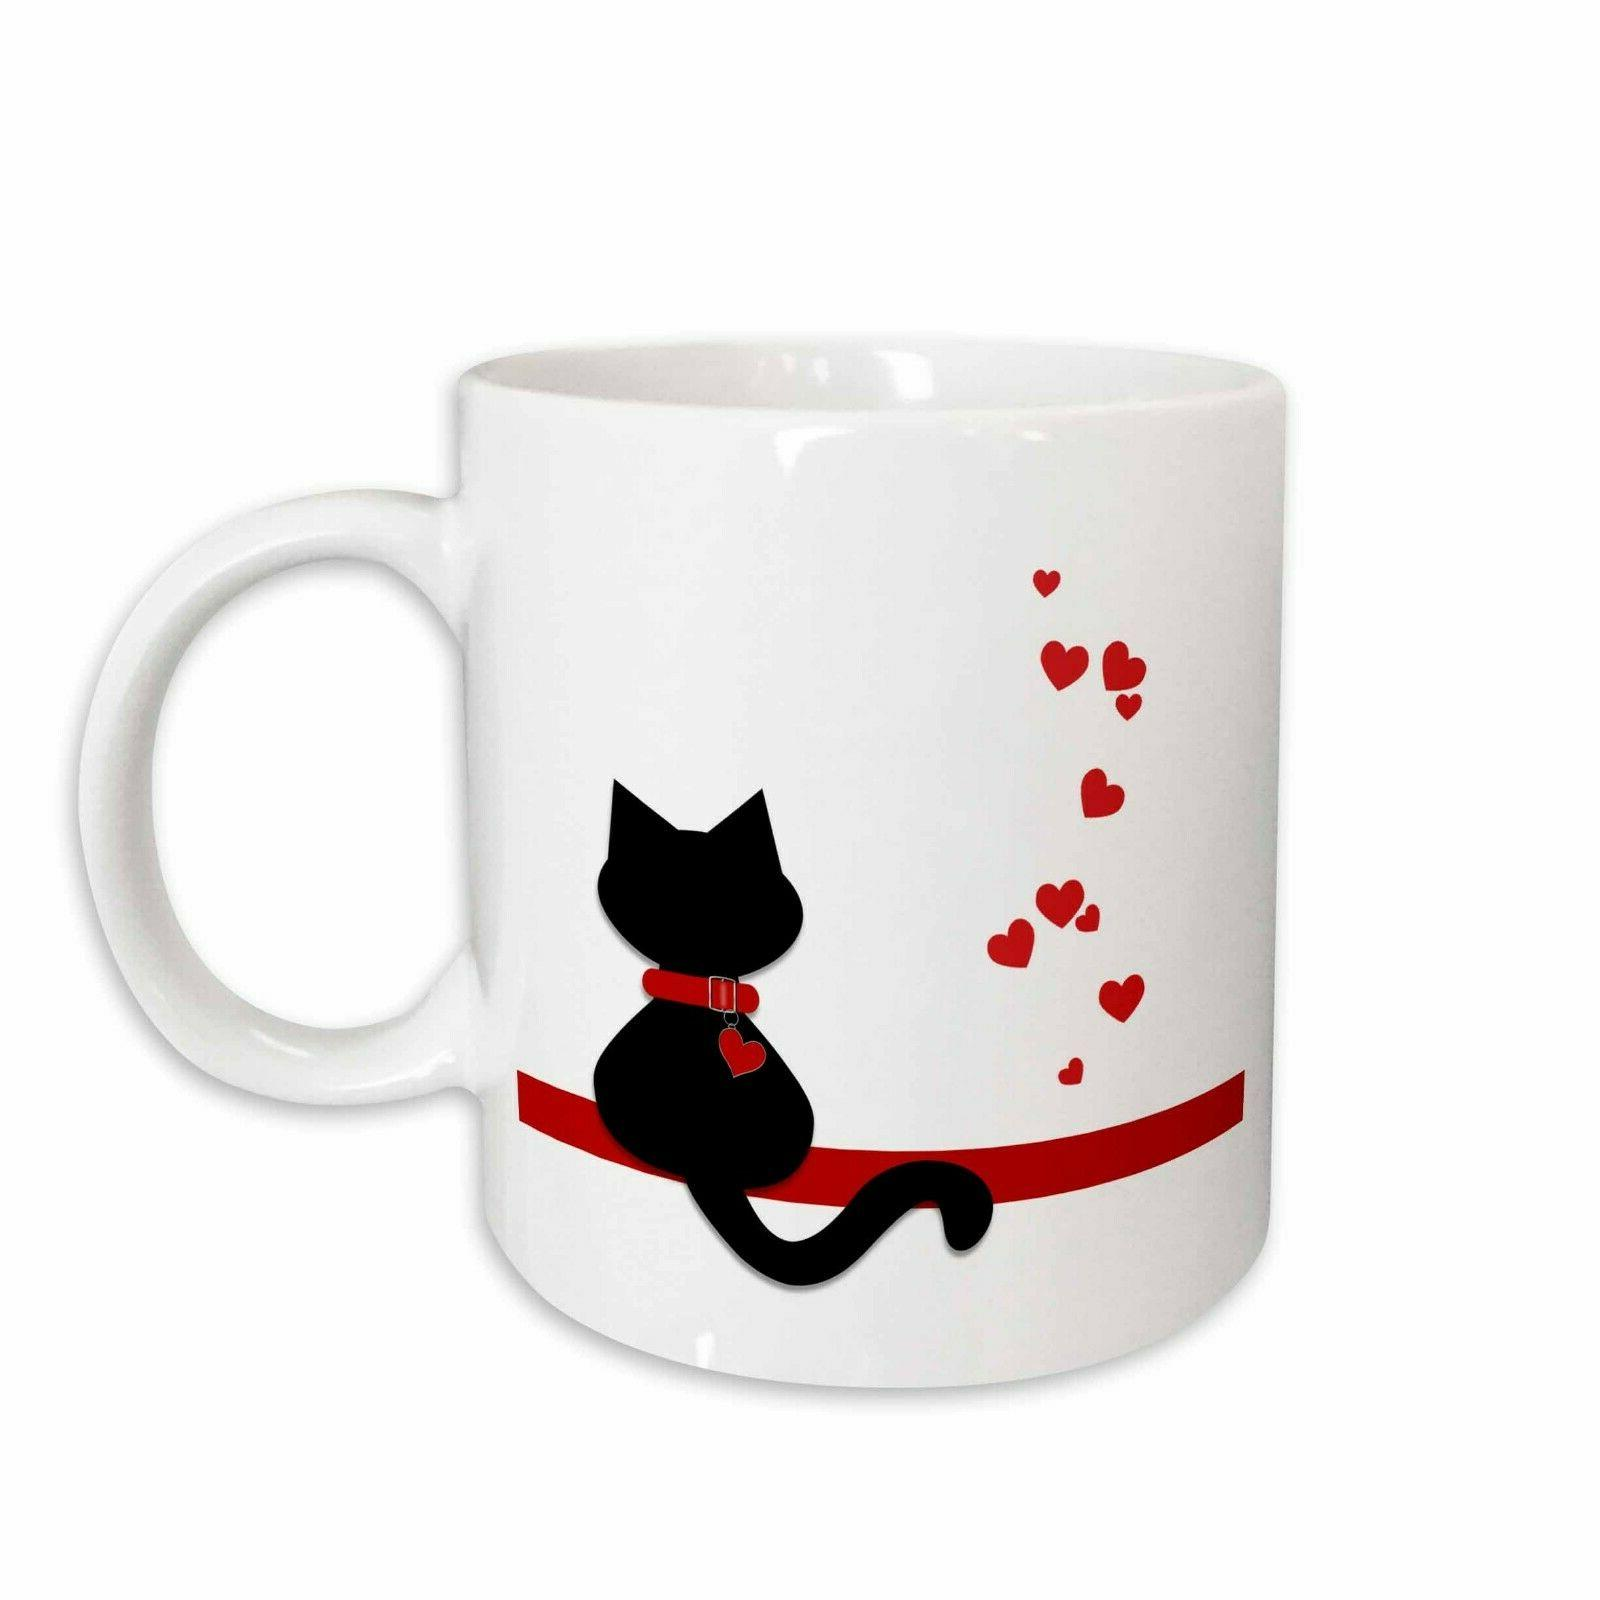 3drose pet lovers red hearts black kitty